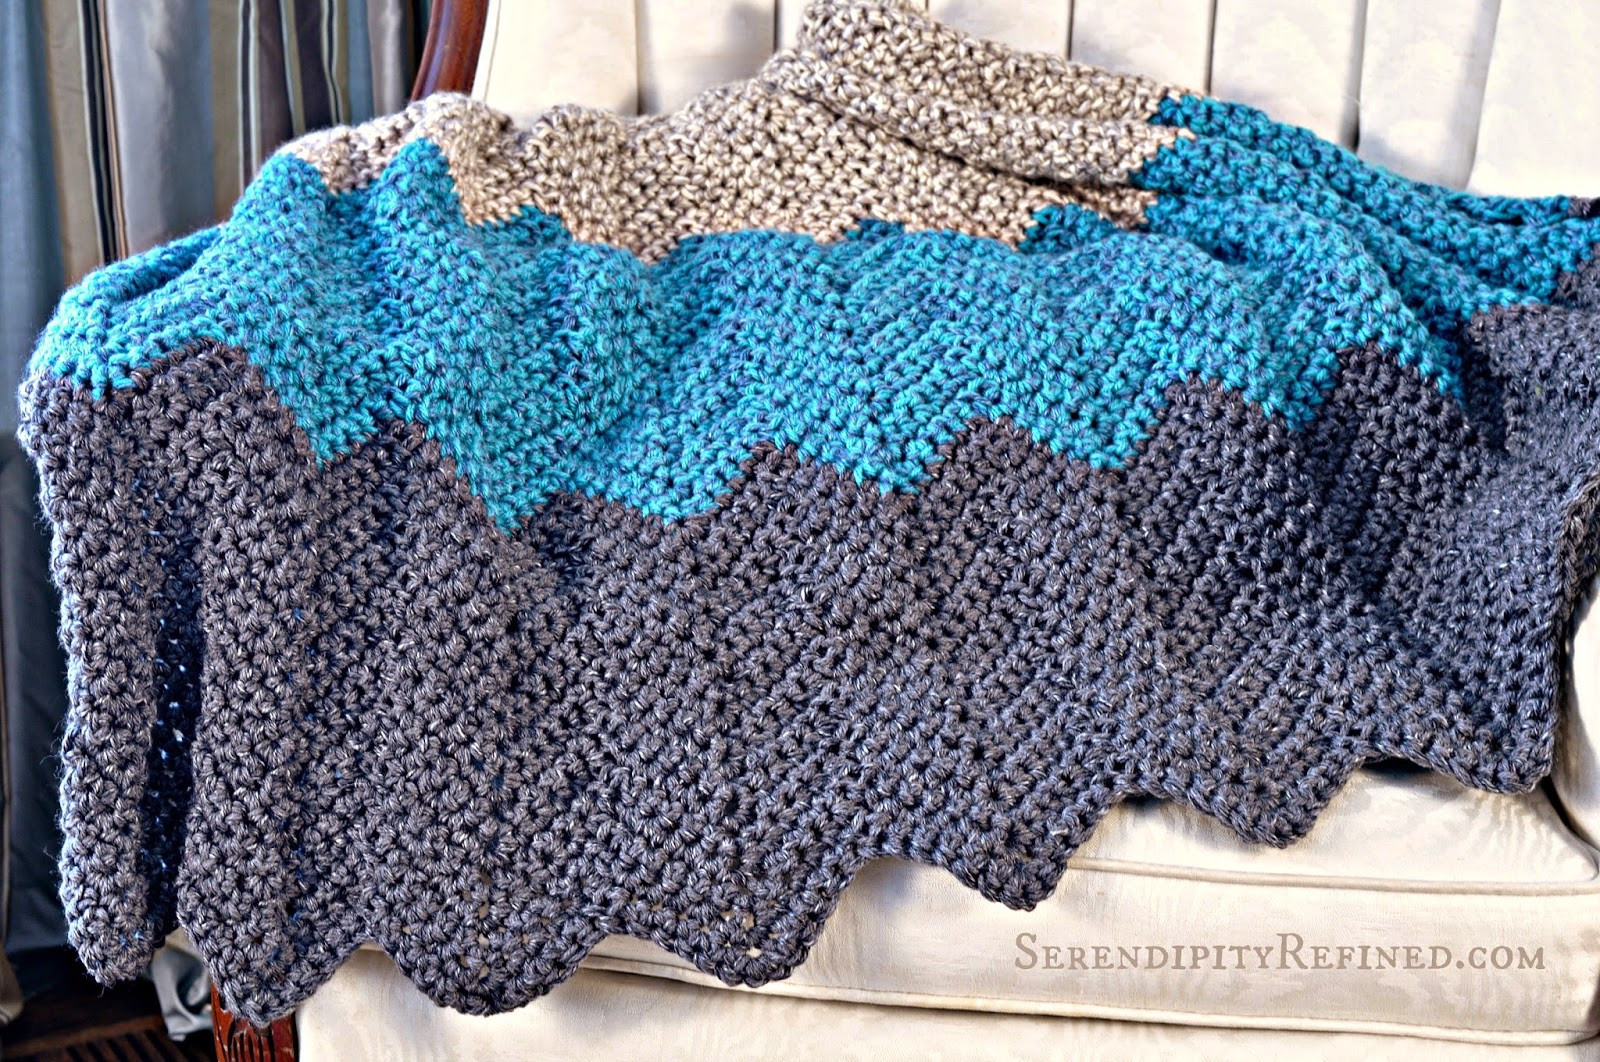 Awesome Easy Crochet Throw Patterns for Beginners Crochet Blanket Patterns for Beginners Of Charming 50 Pictures Crochet Blanket Patterns for Beginners